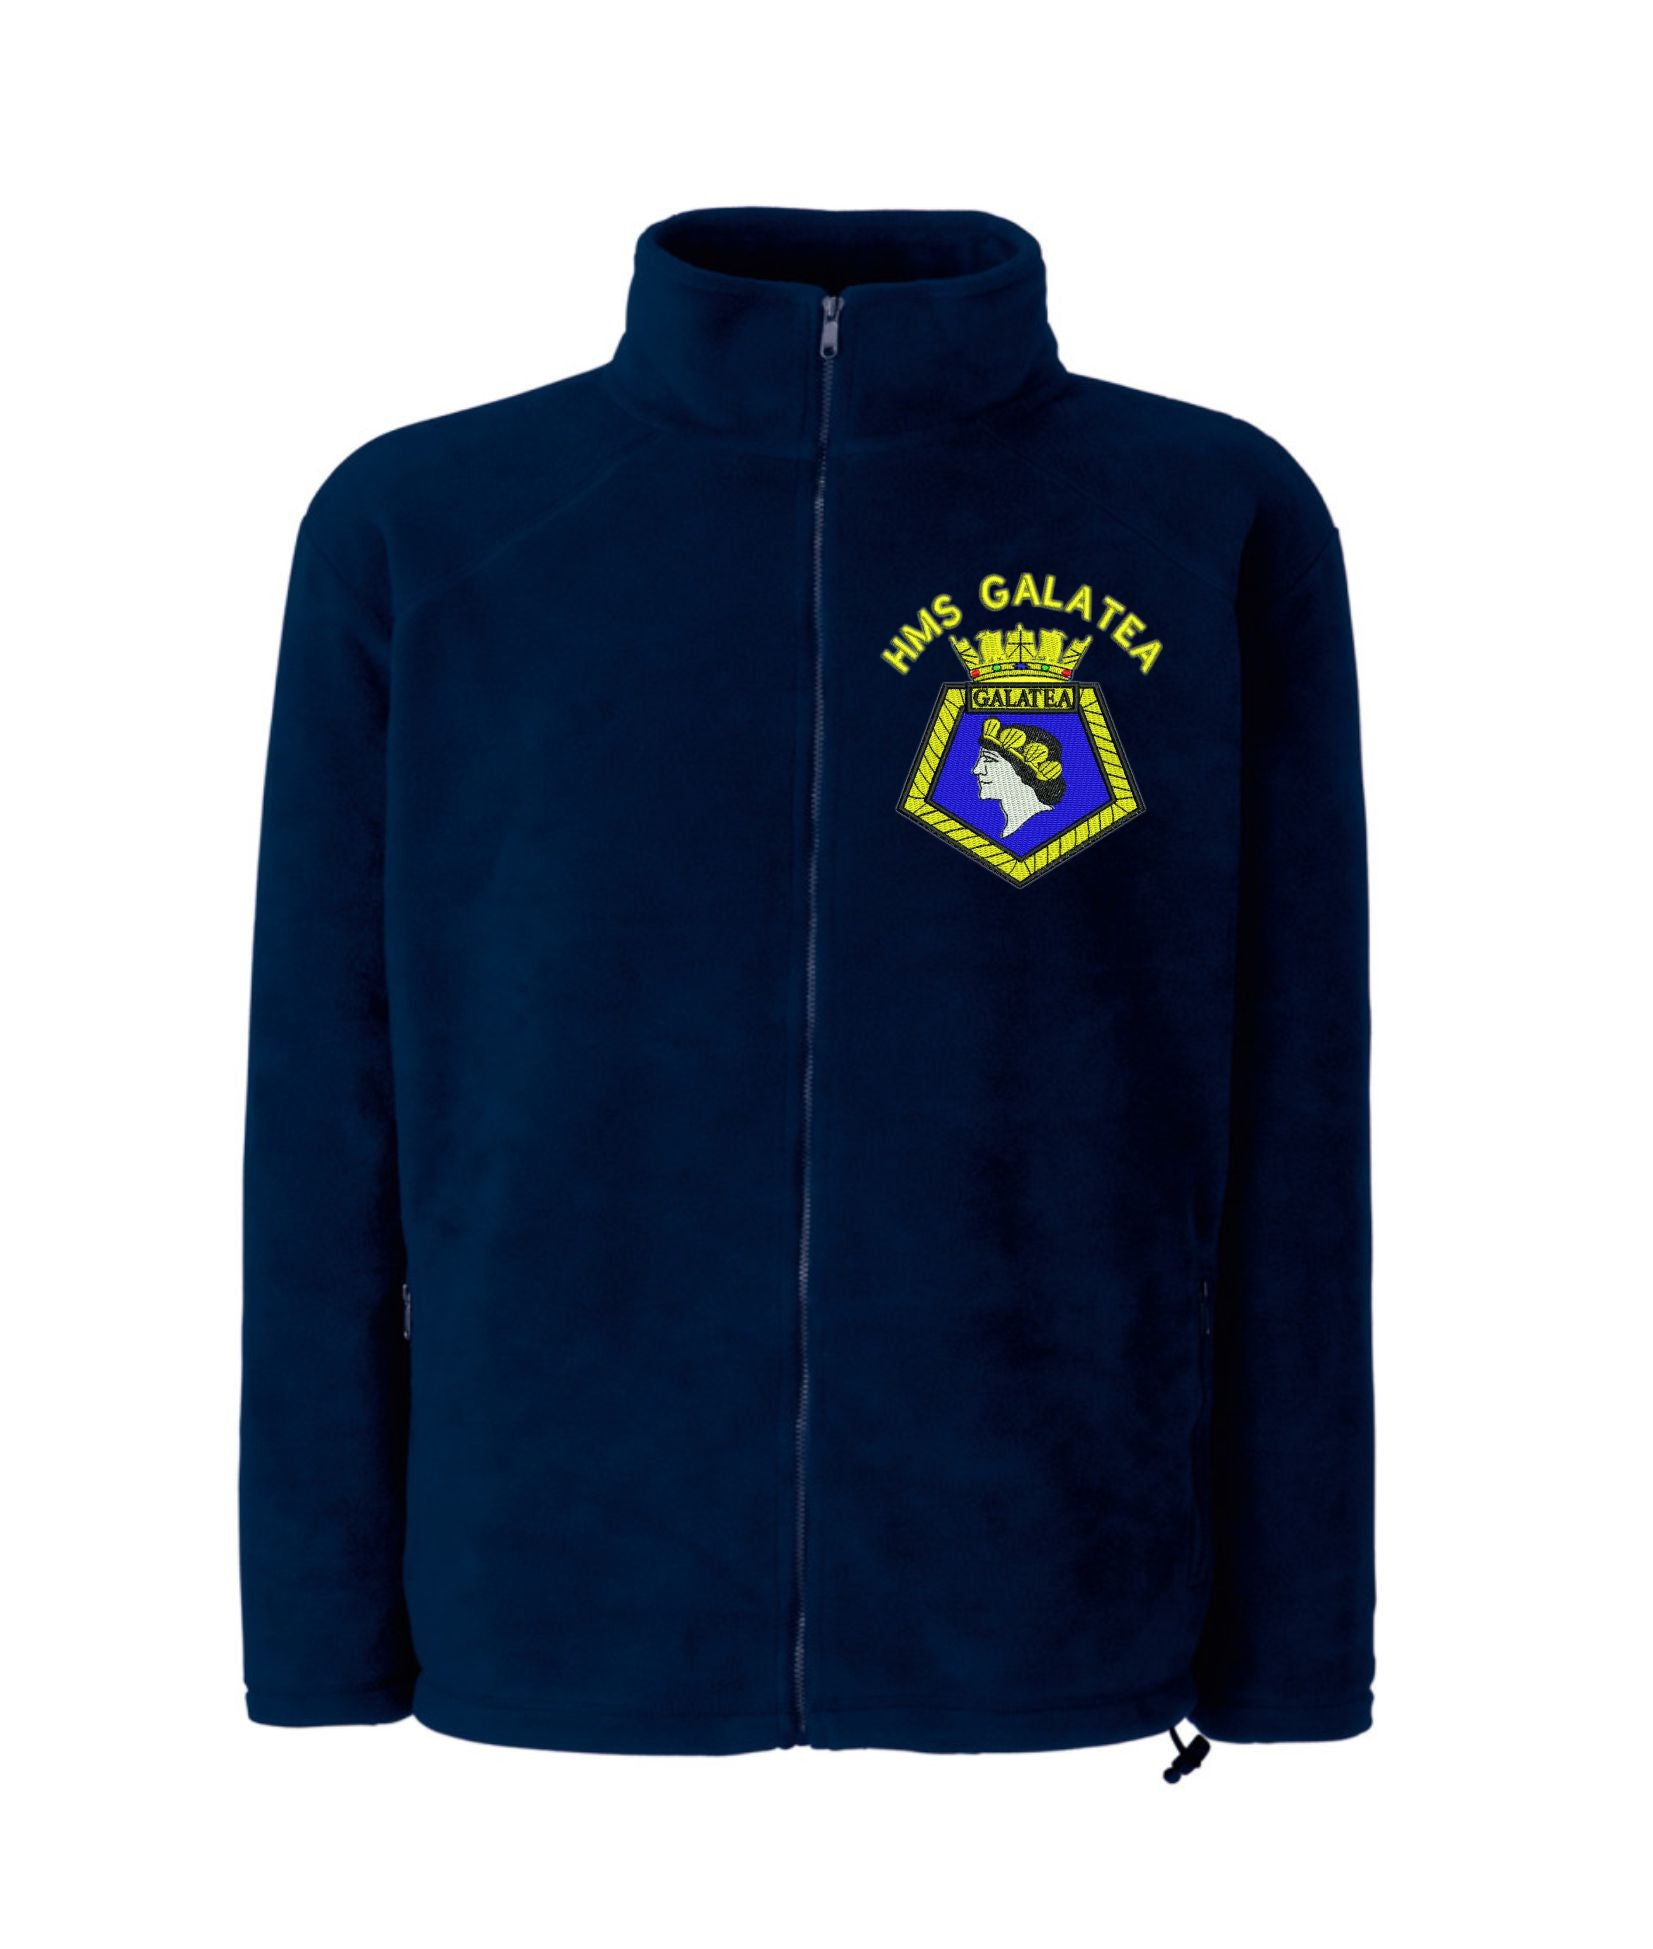 HMS Galatea Fleece